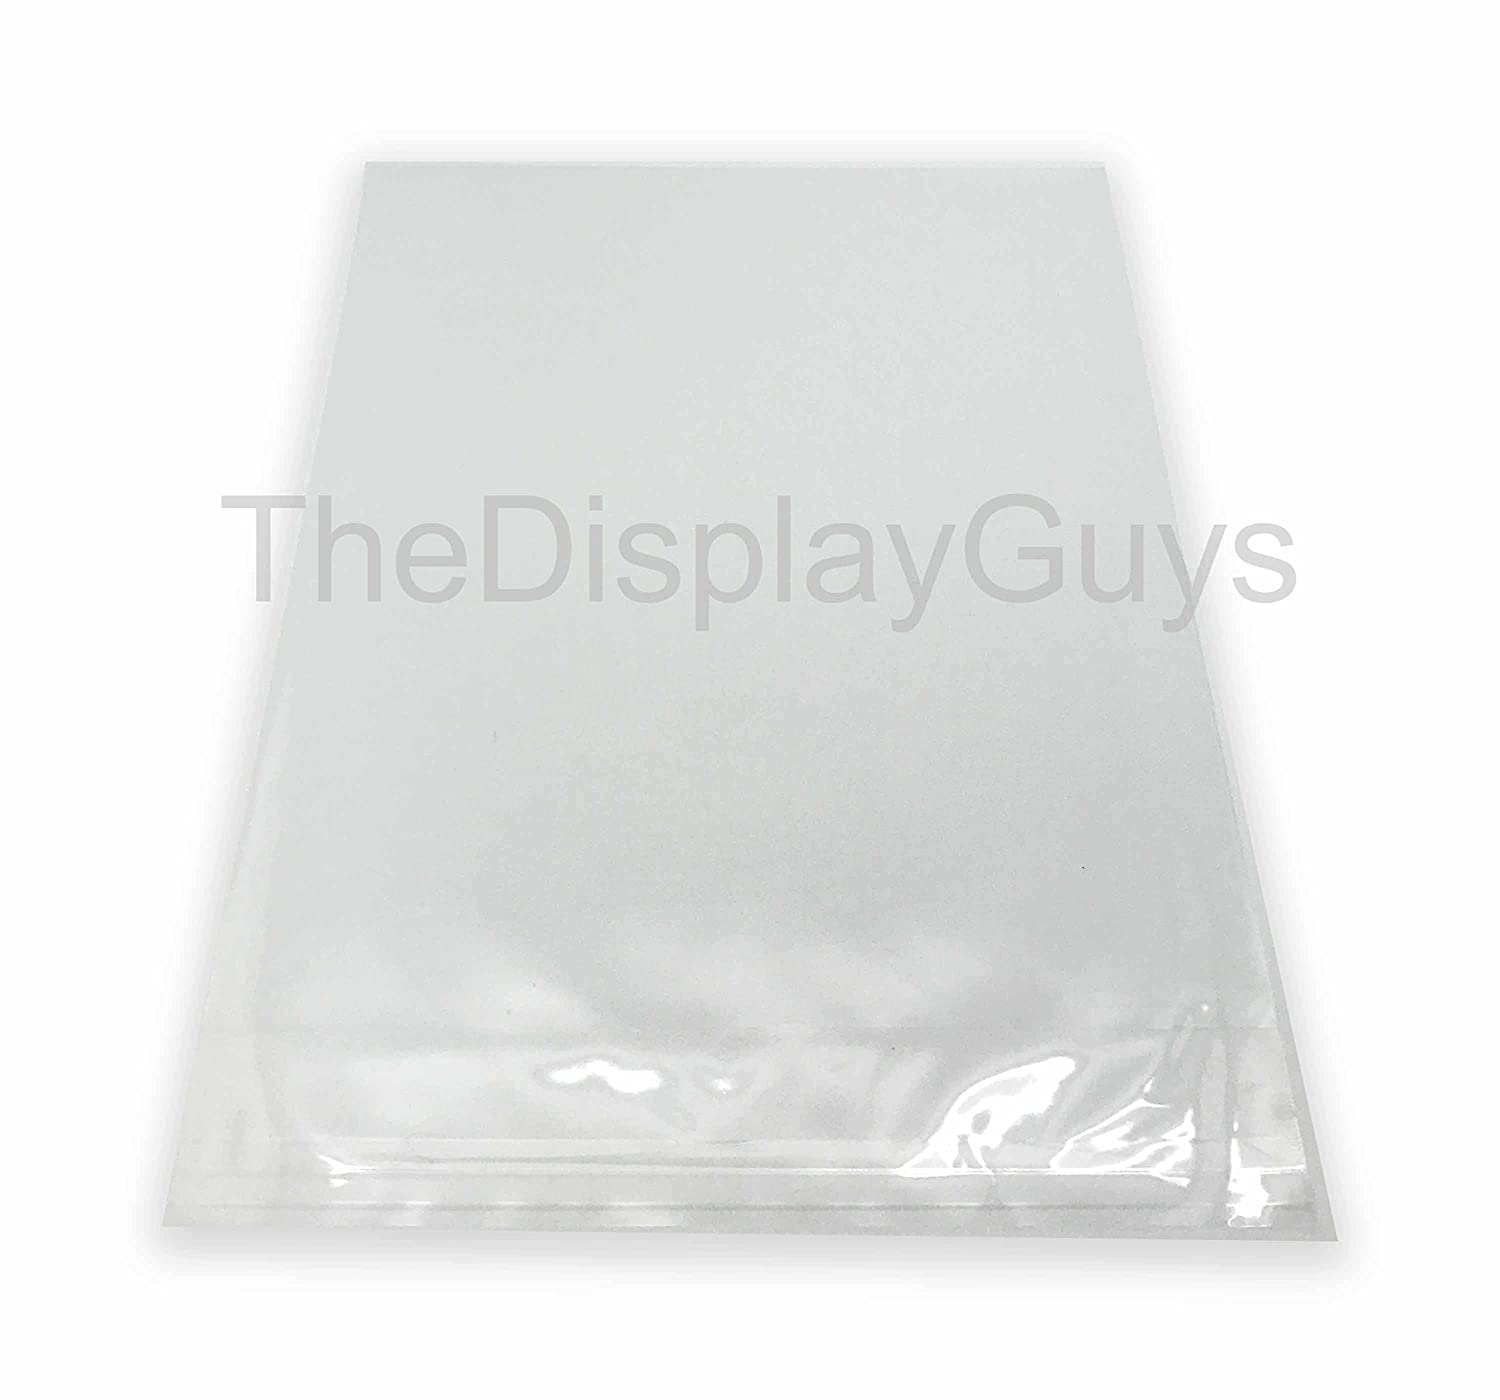 "100 Pcs 11 /½/"" x 14 1//4 Clear Self Adhesive Plastic Bags for 8/""x10/"" Picture Photo Framing Mats The Display Guys"